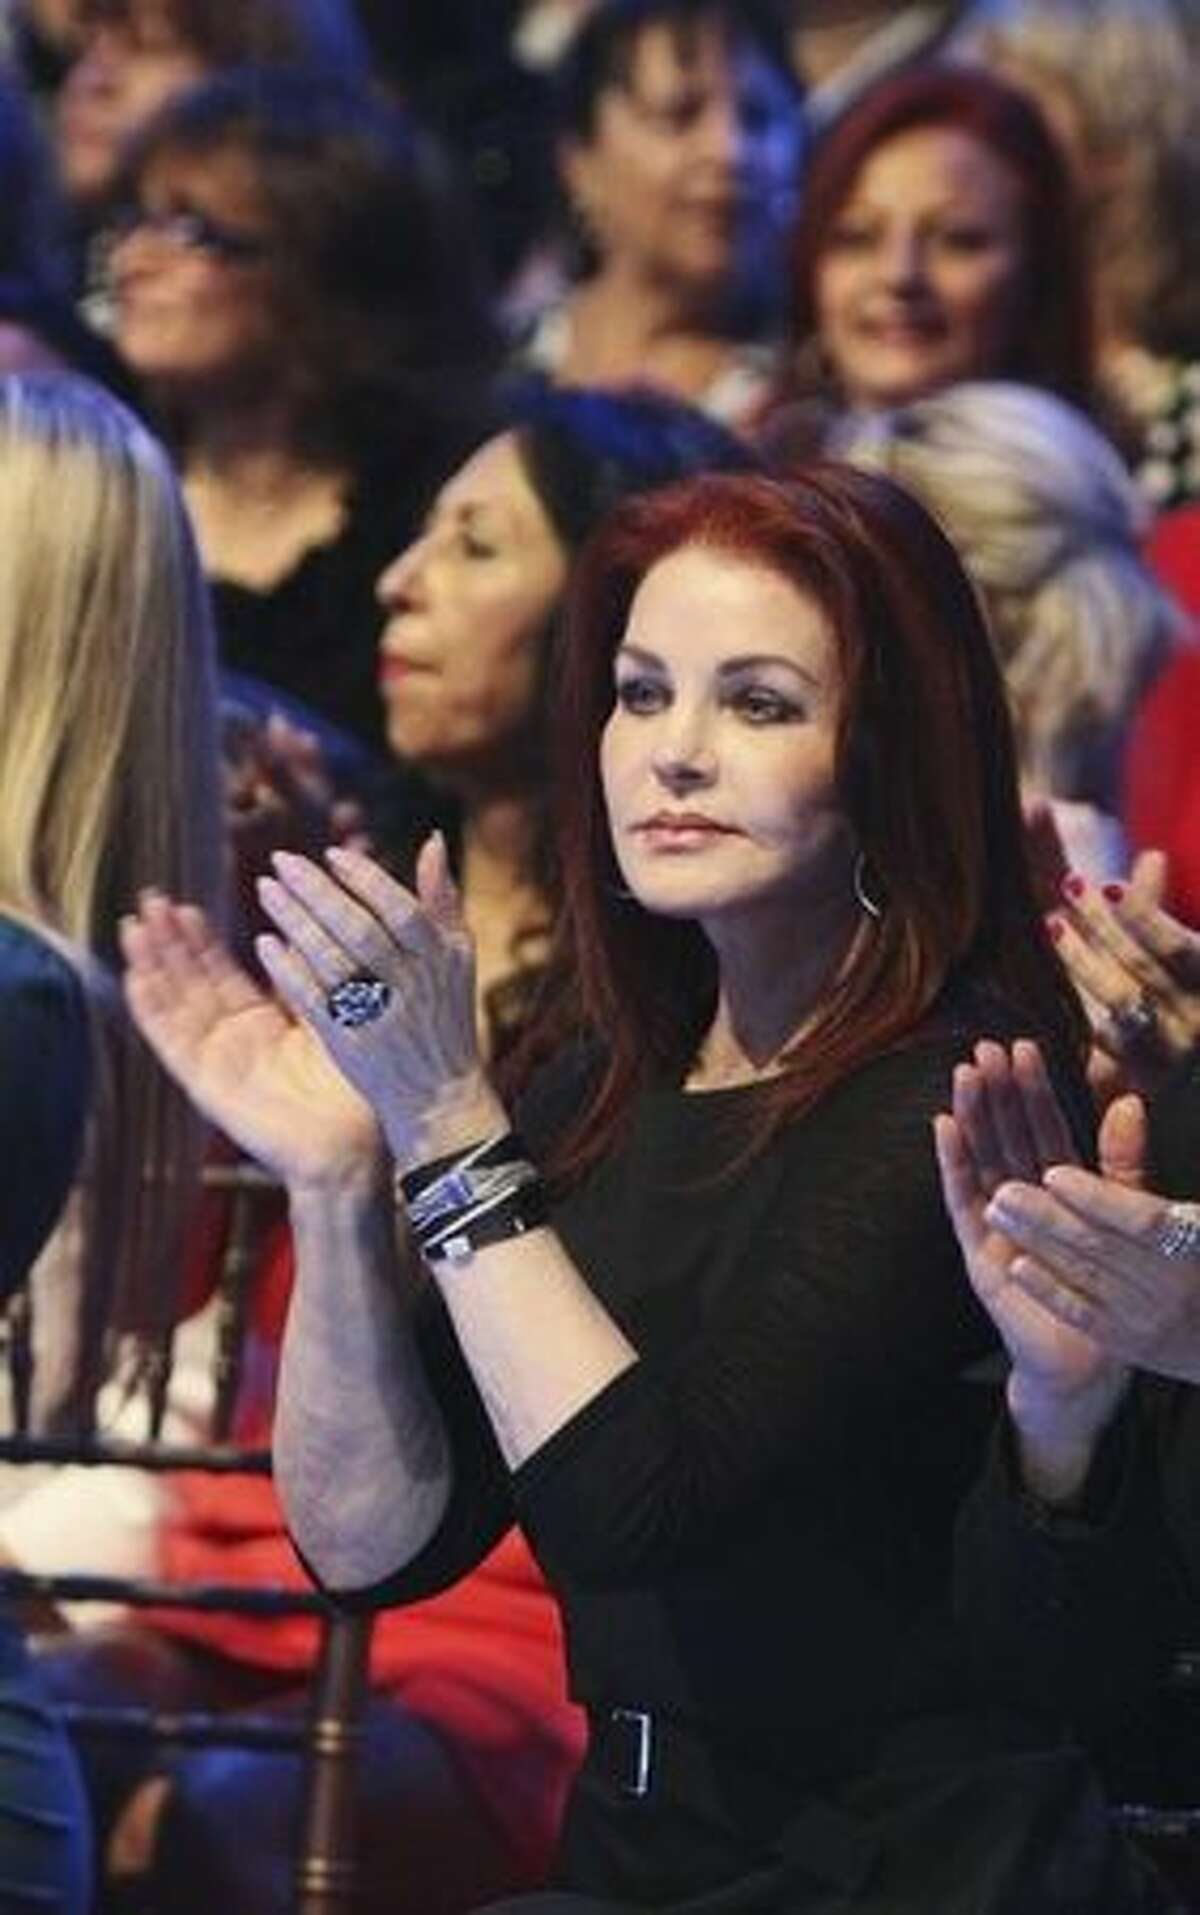 Another former contestant, Priscilla Presley, is in the audience.